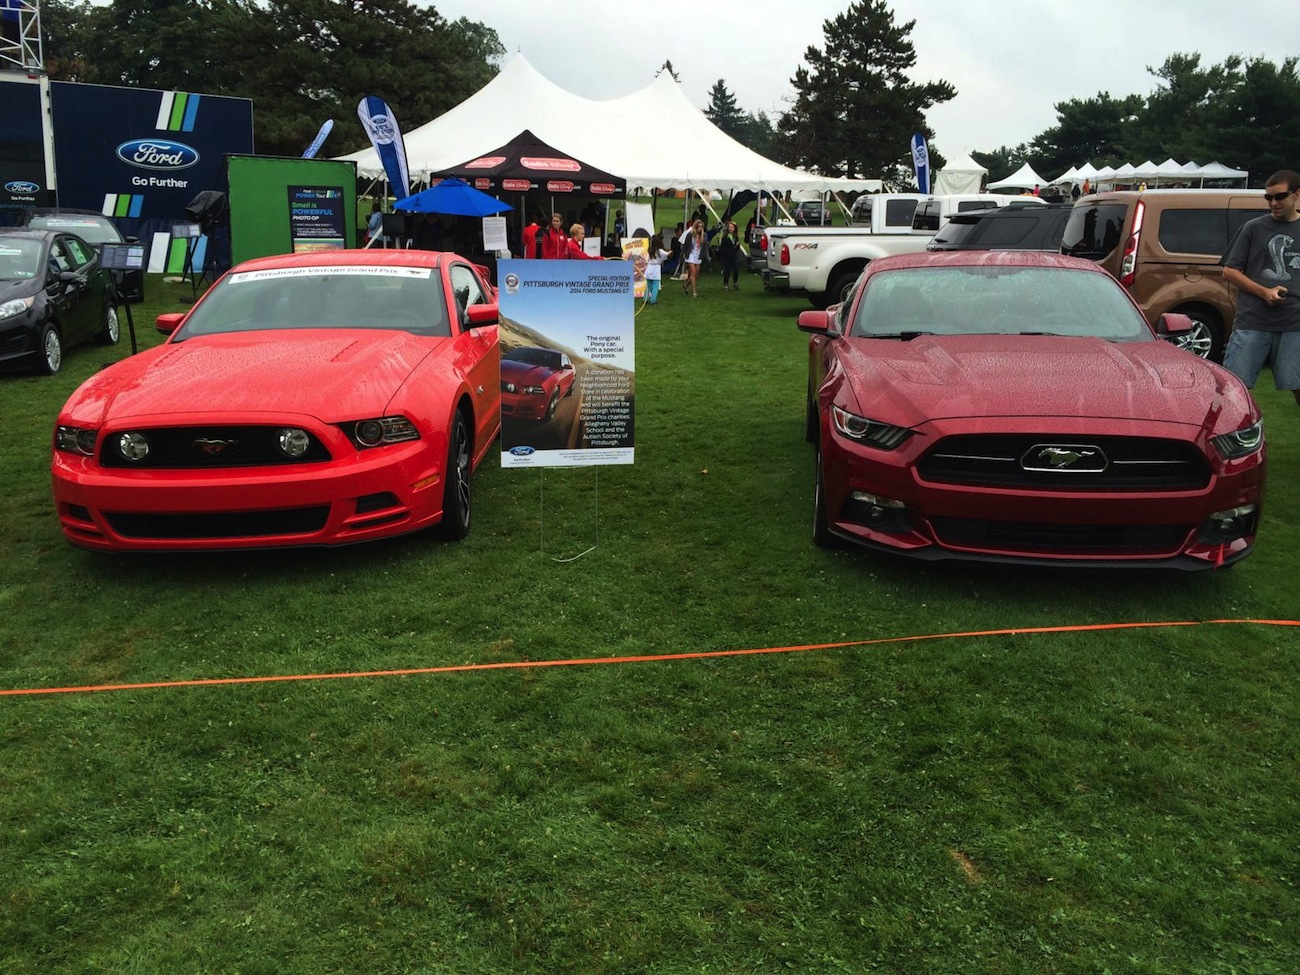 side by side comparison of the 2015 mustang s550 and 2014 mustang s197 2015 mustang forum. Black Bedroom Furniture Sets. Home Design Ideas